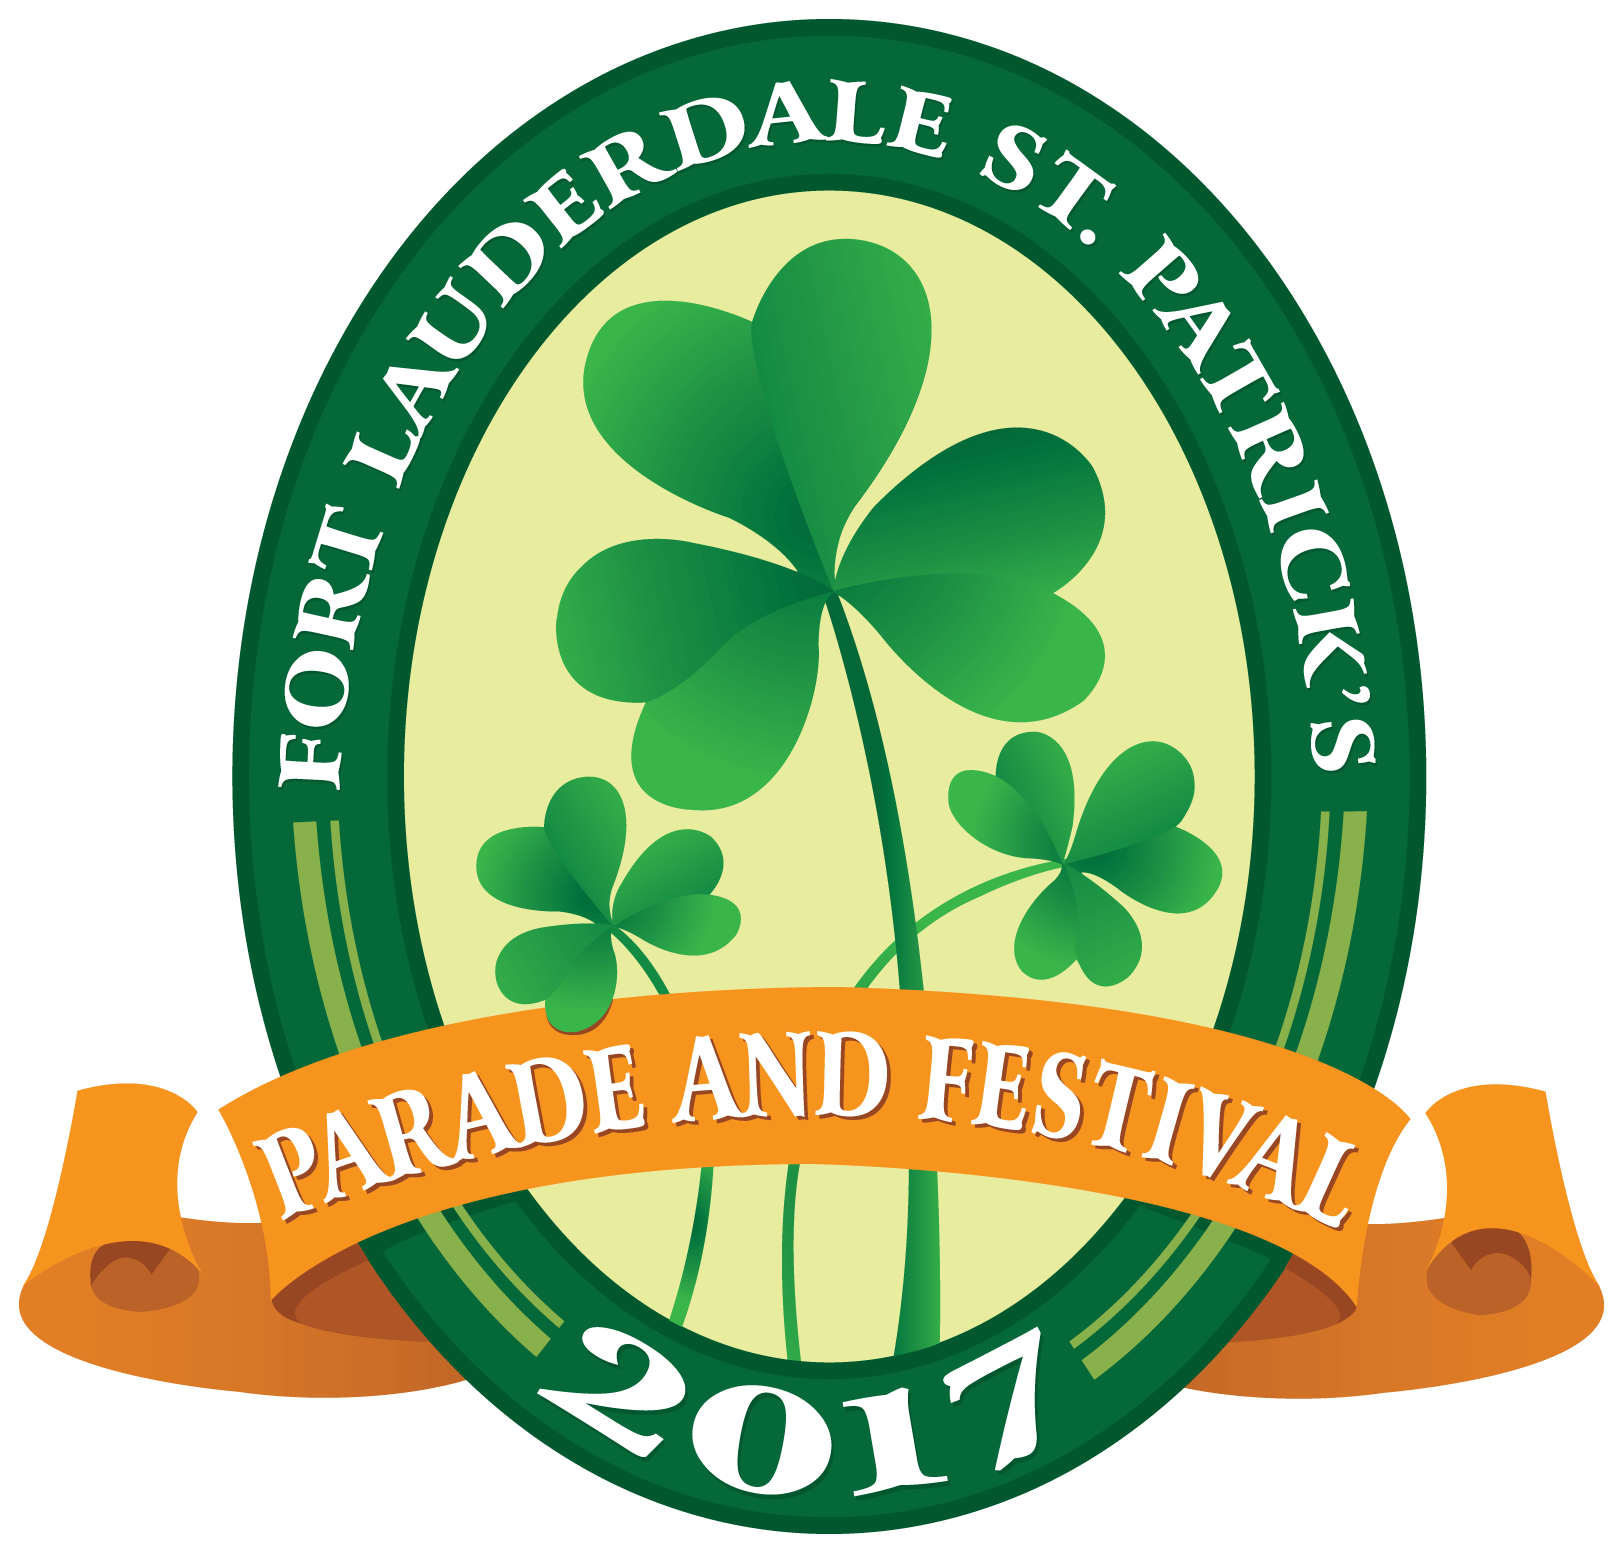 1623x1553 Fort Lauderdale St. Patrick's Day Parade And Festival